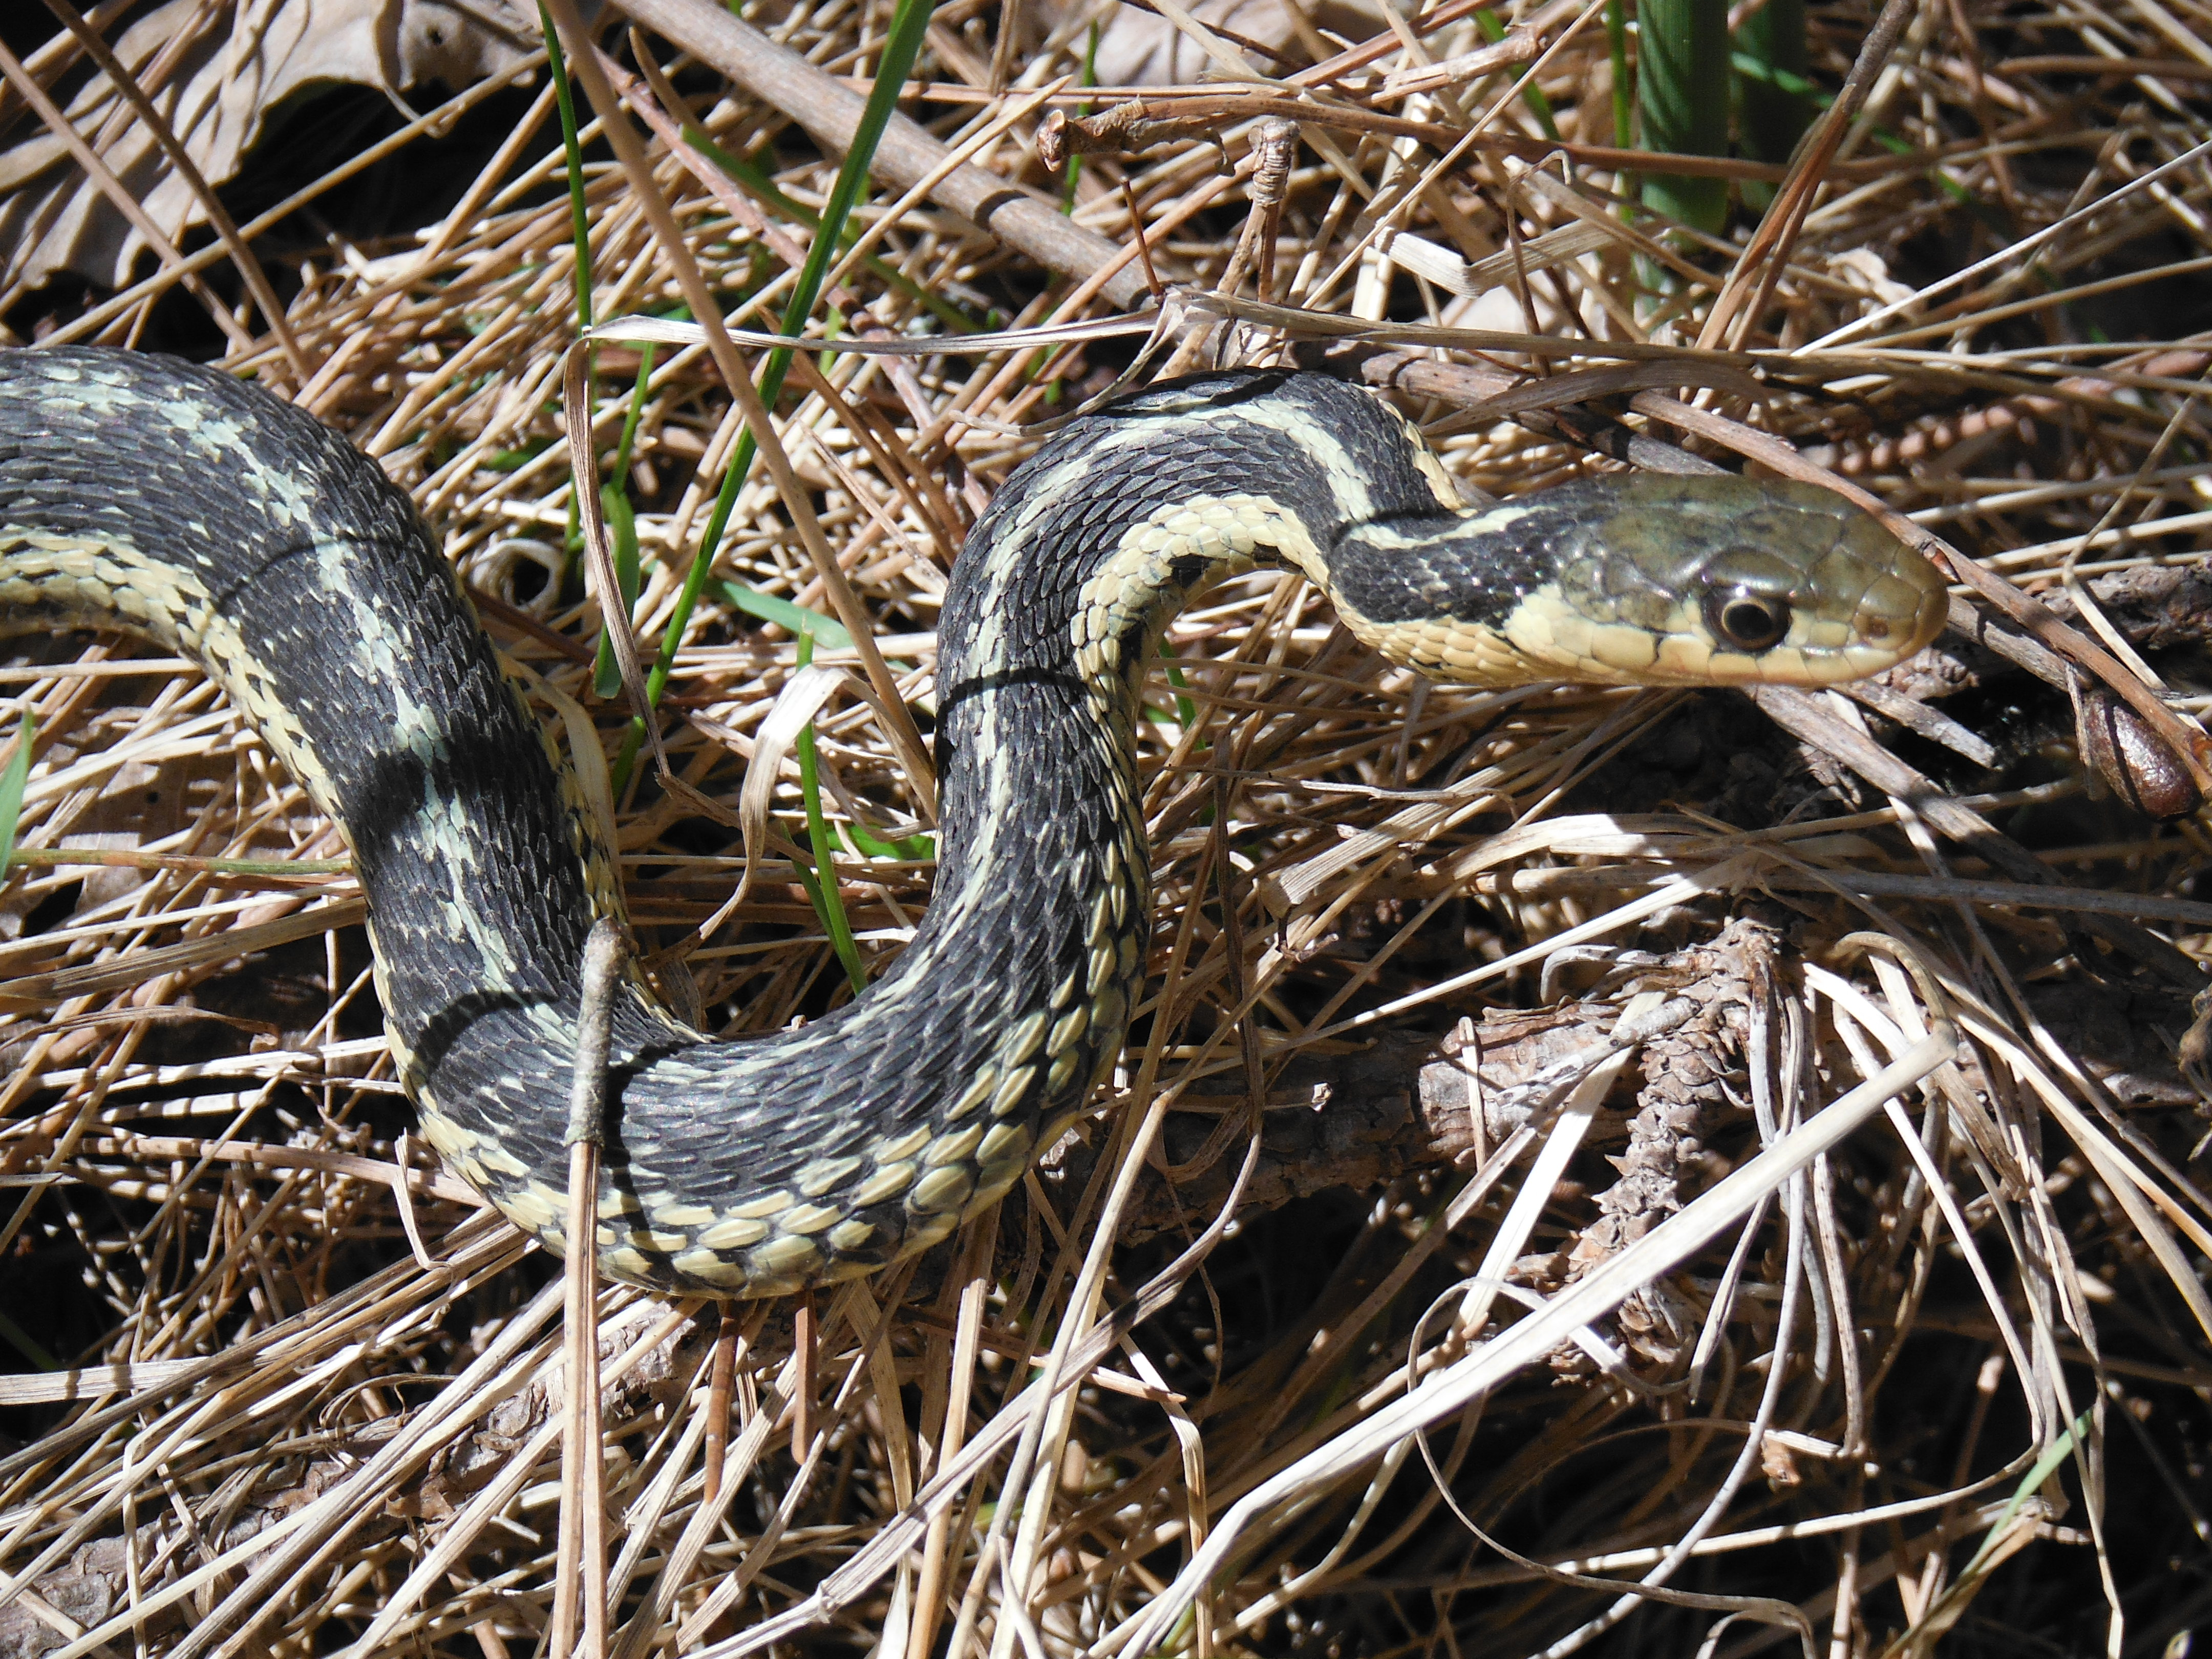 Watch out or I'll pop you one, buddy!  Eastern garter in striking pose